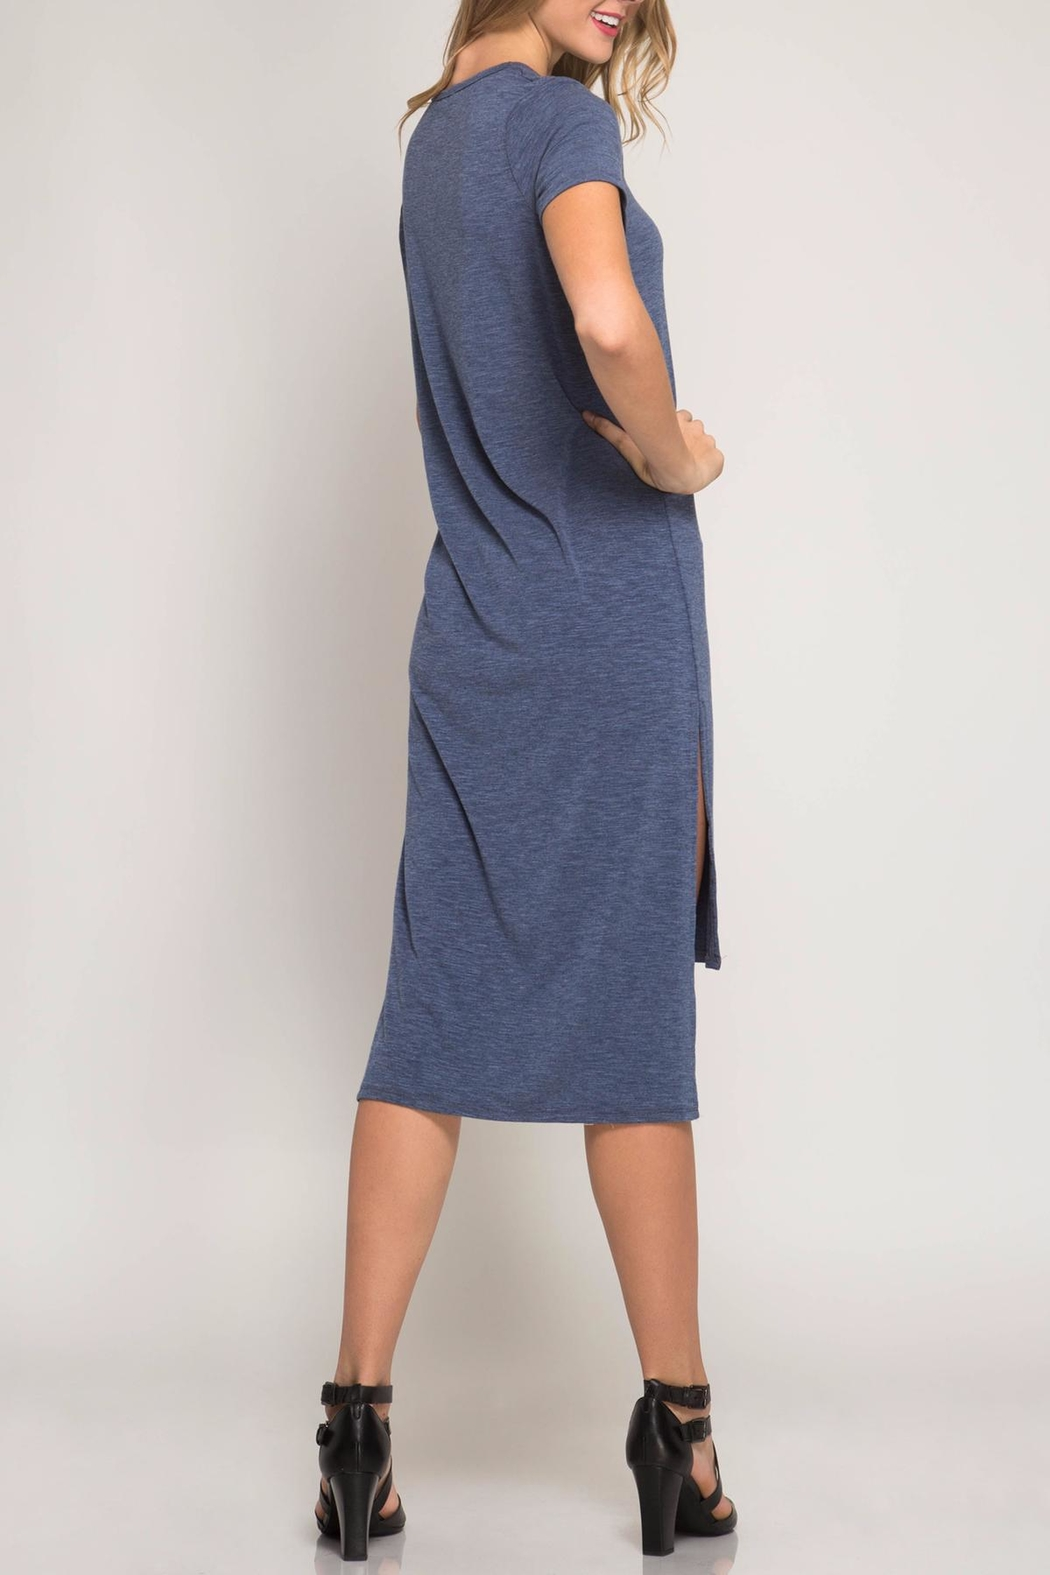 She + Sky High-Low Tee Dress - Front Full Image